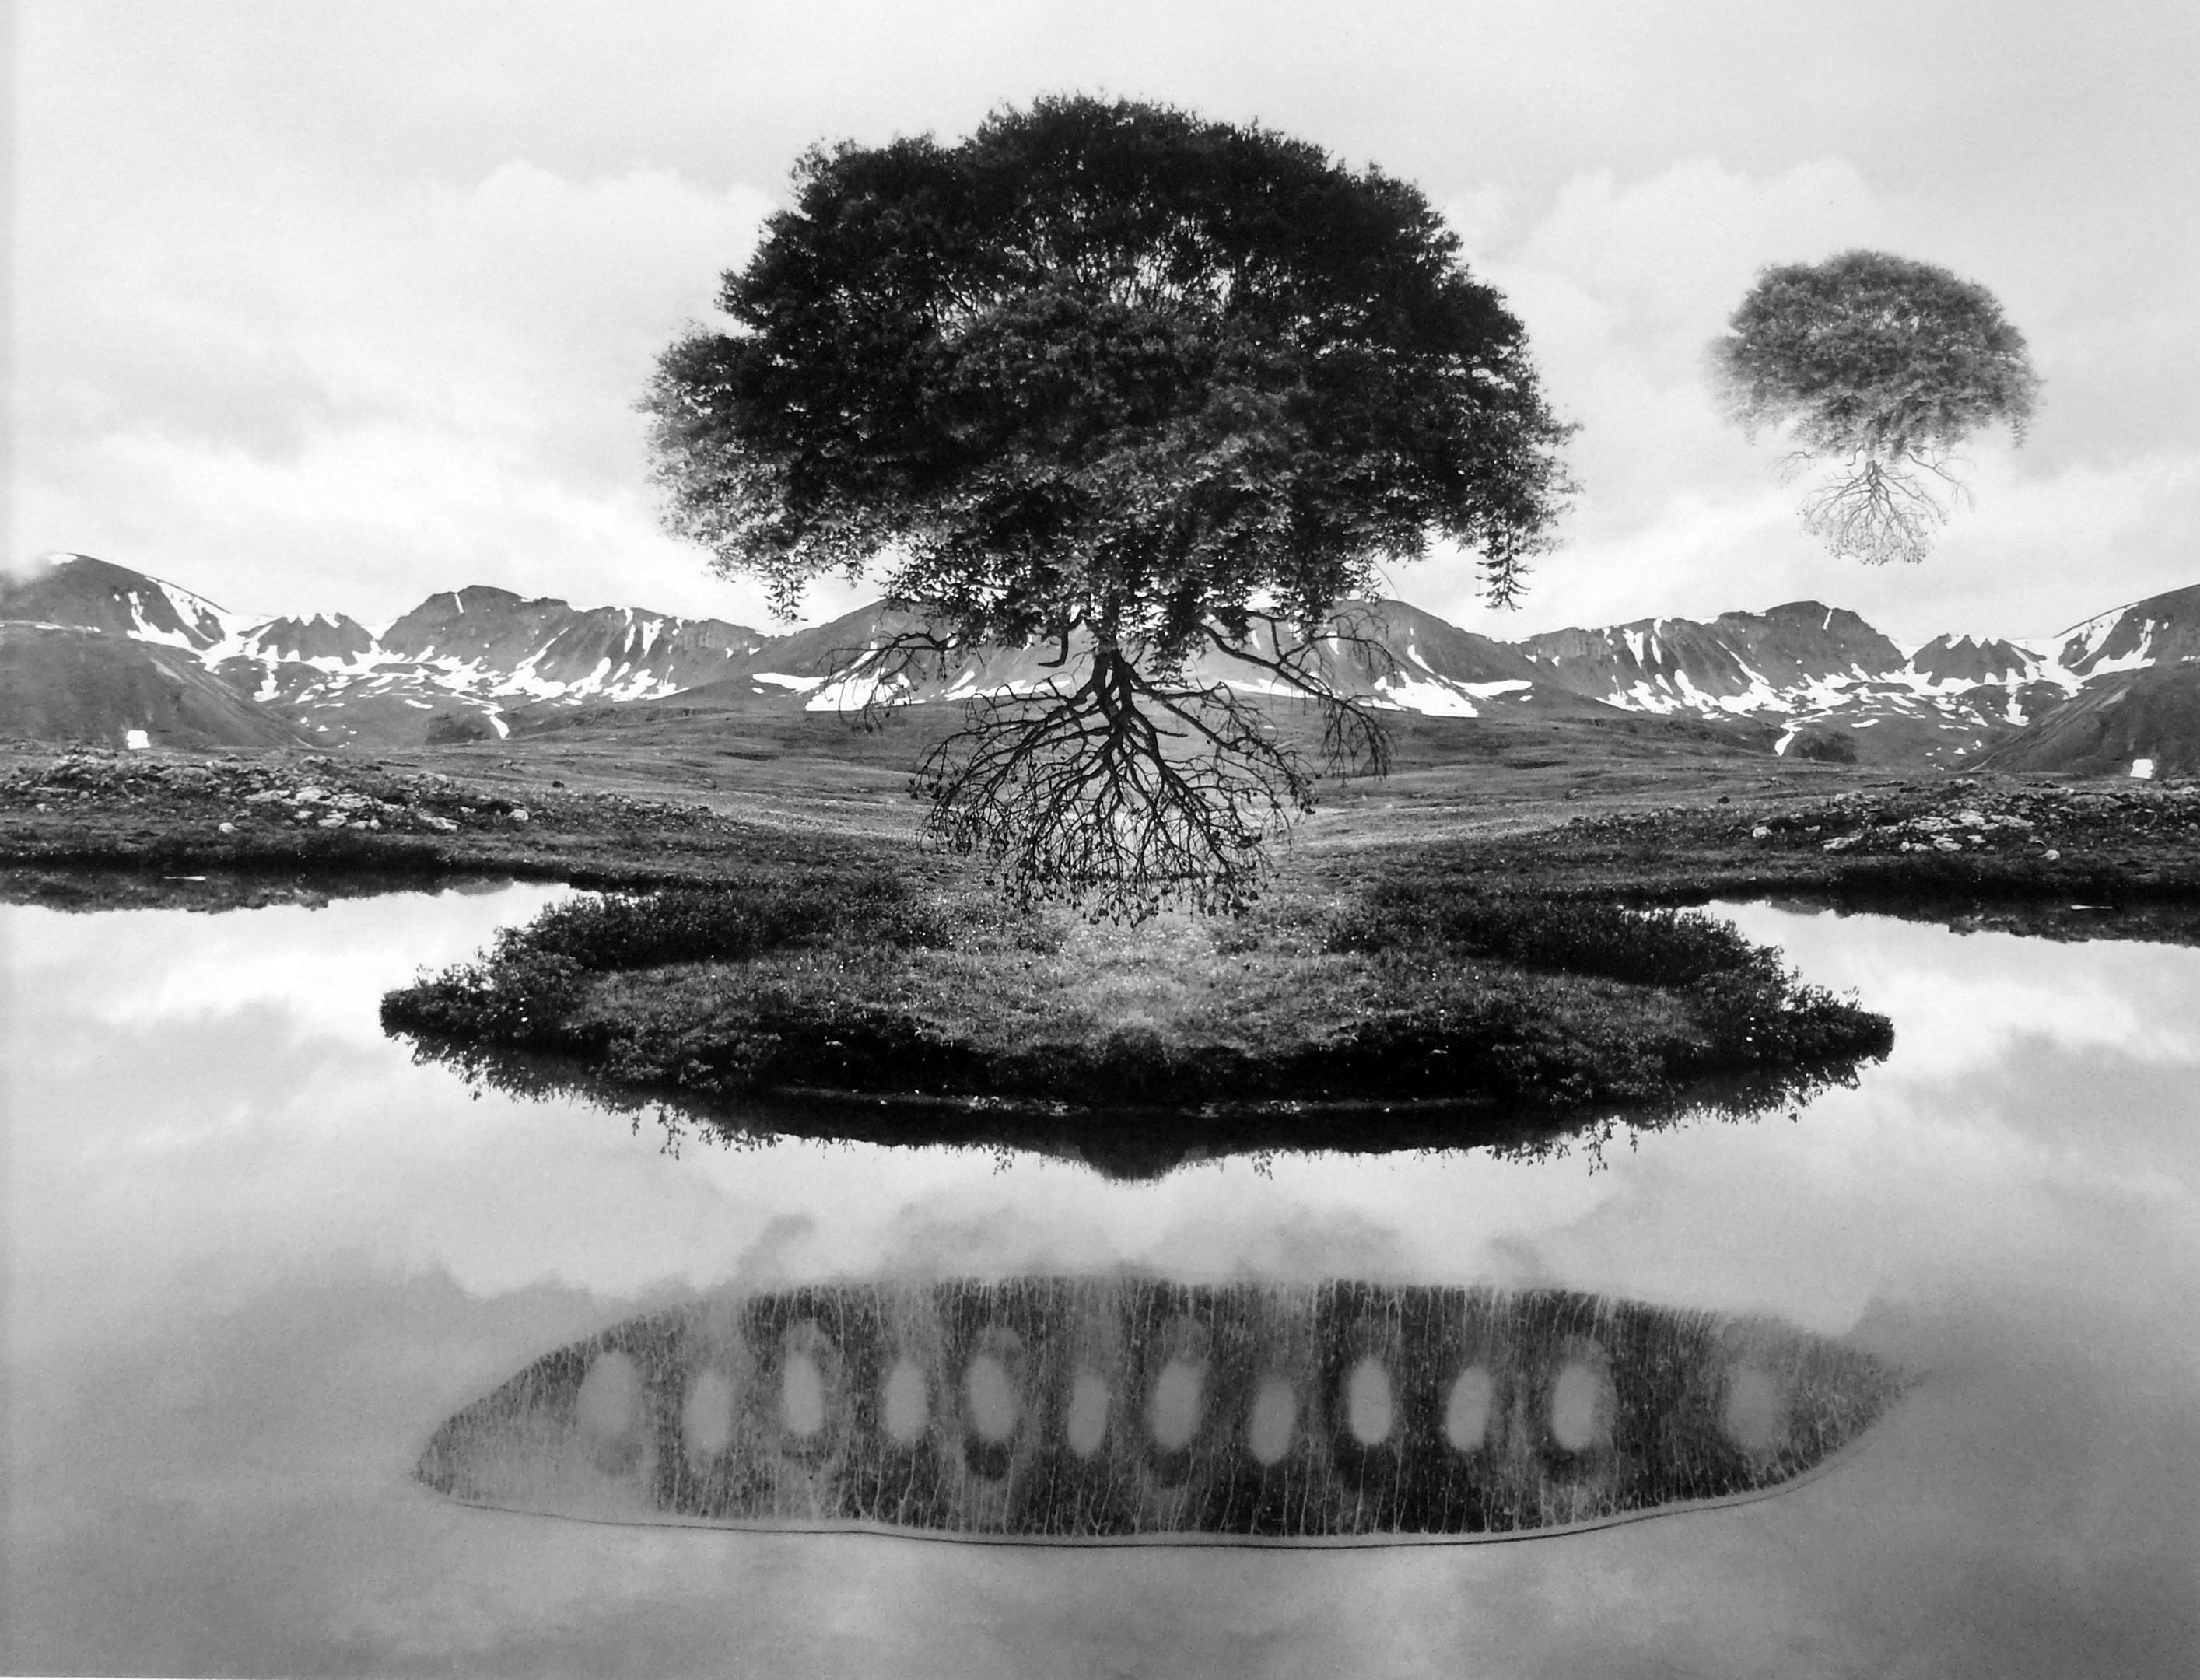 Jerry Uelsmann - Untitled (Floating Trees)